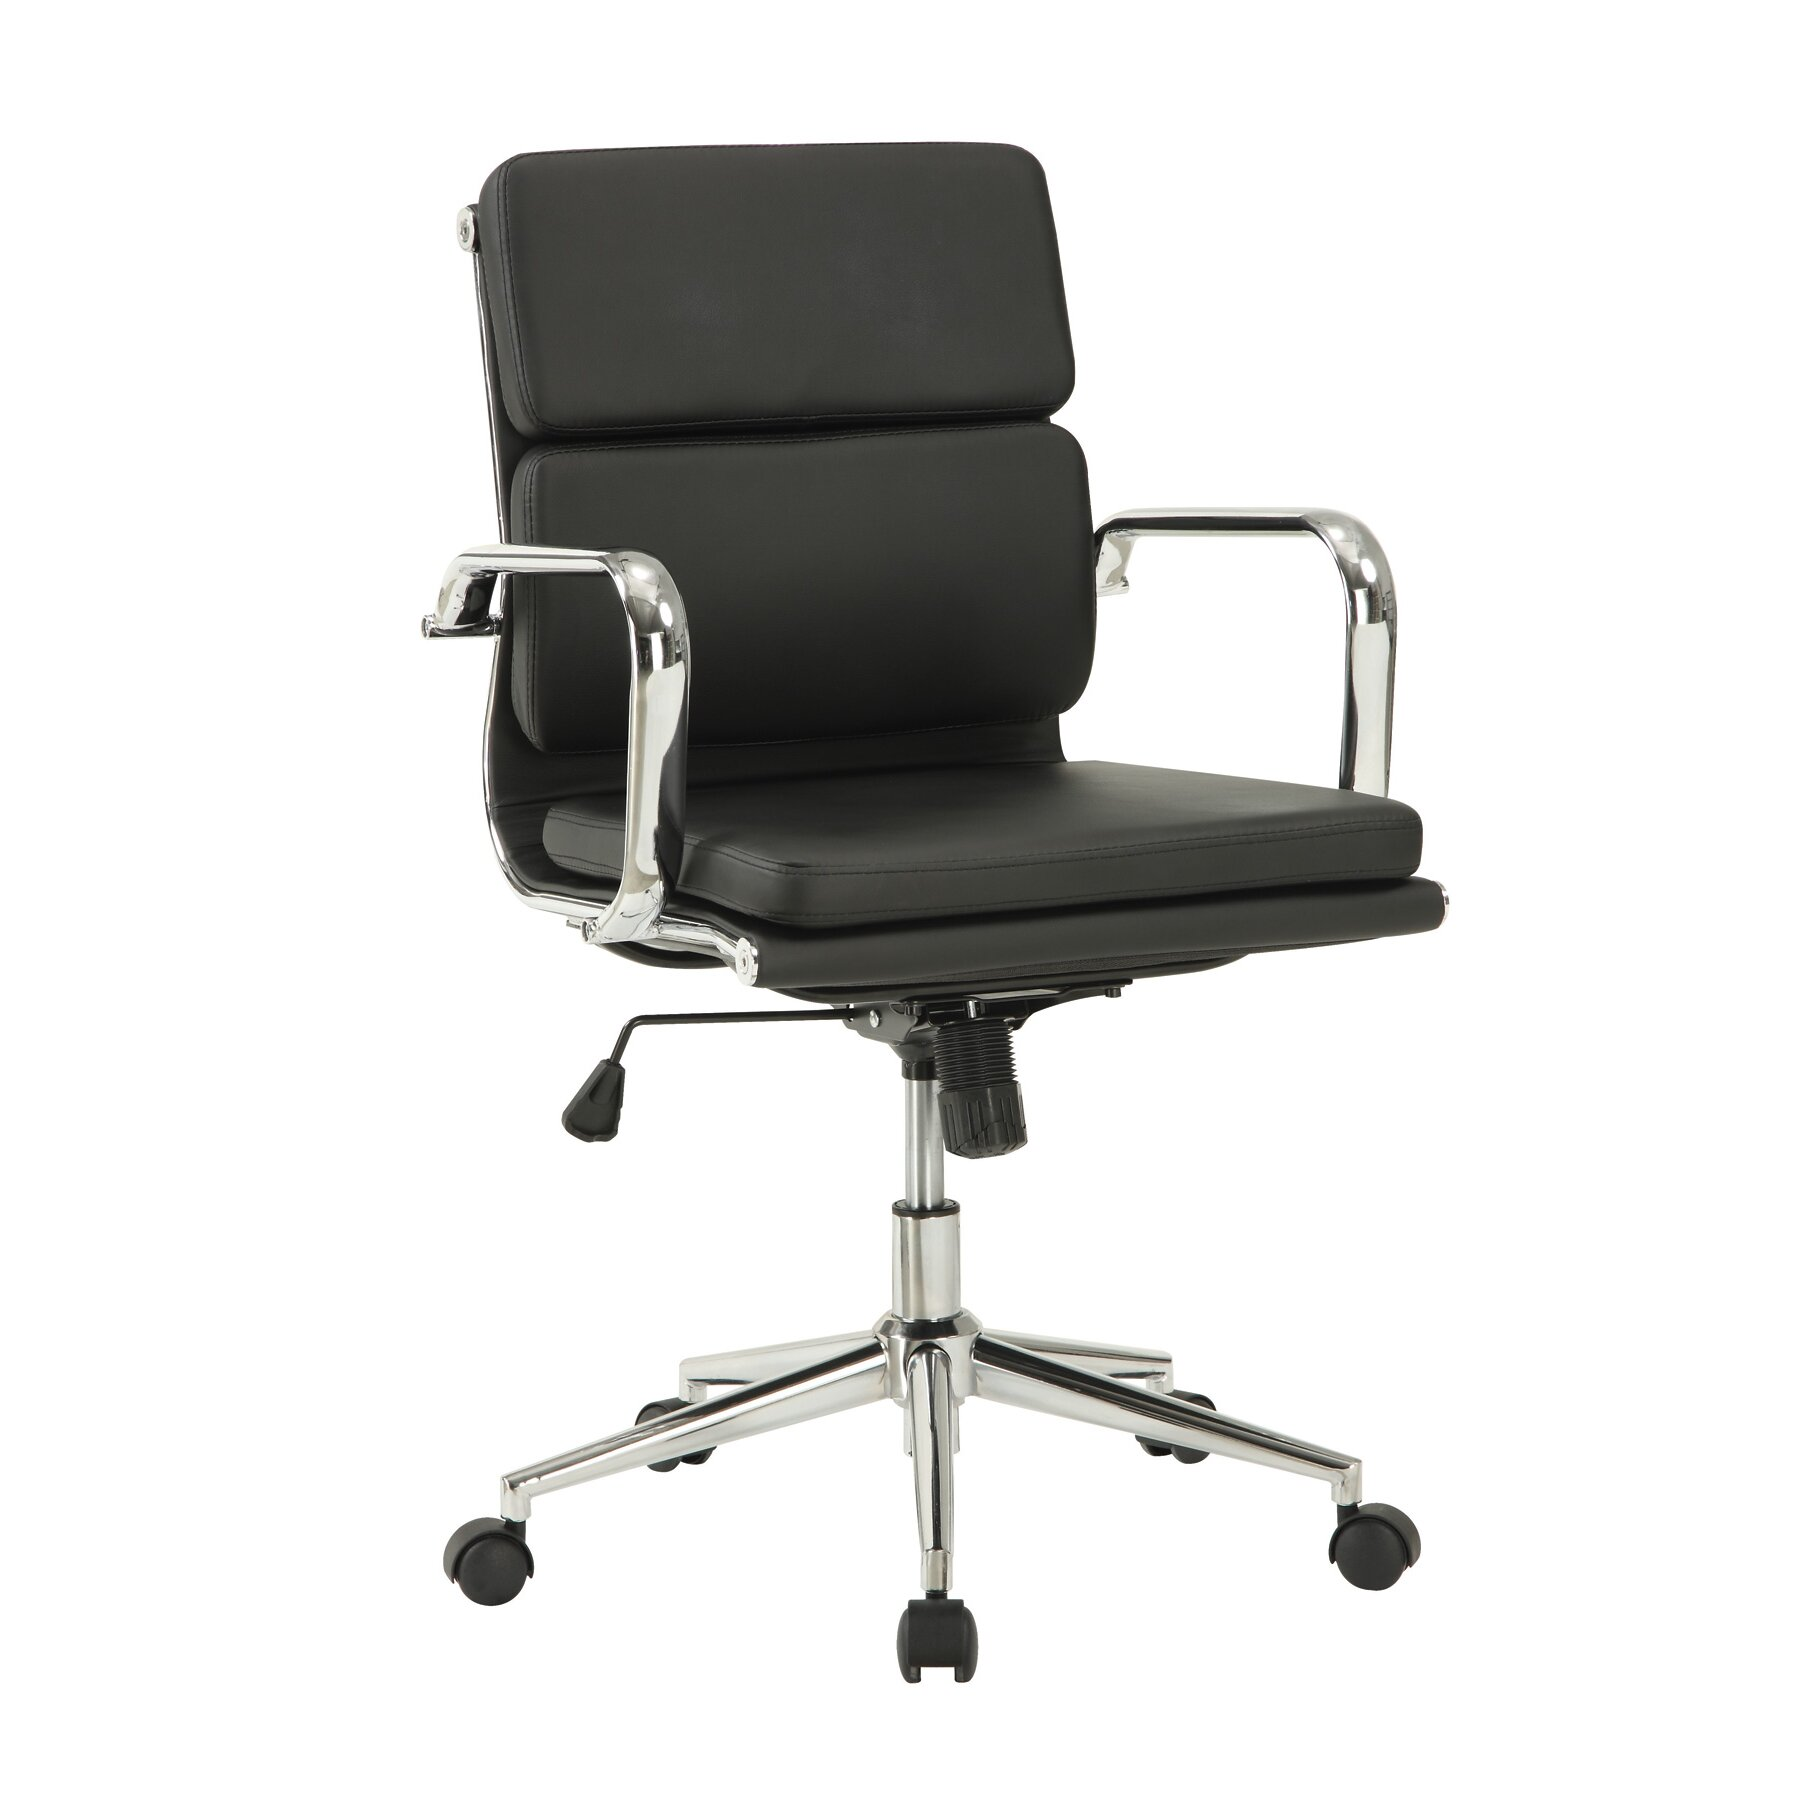 Wildon Home ® Mid-Back Leather Office Chair With Arms